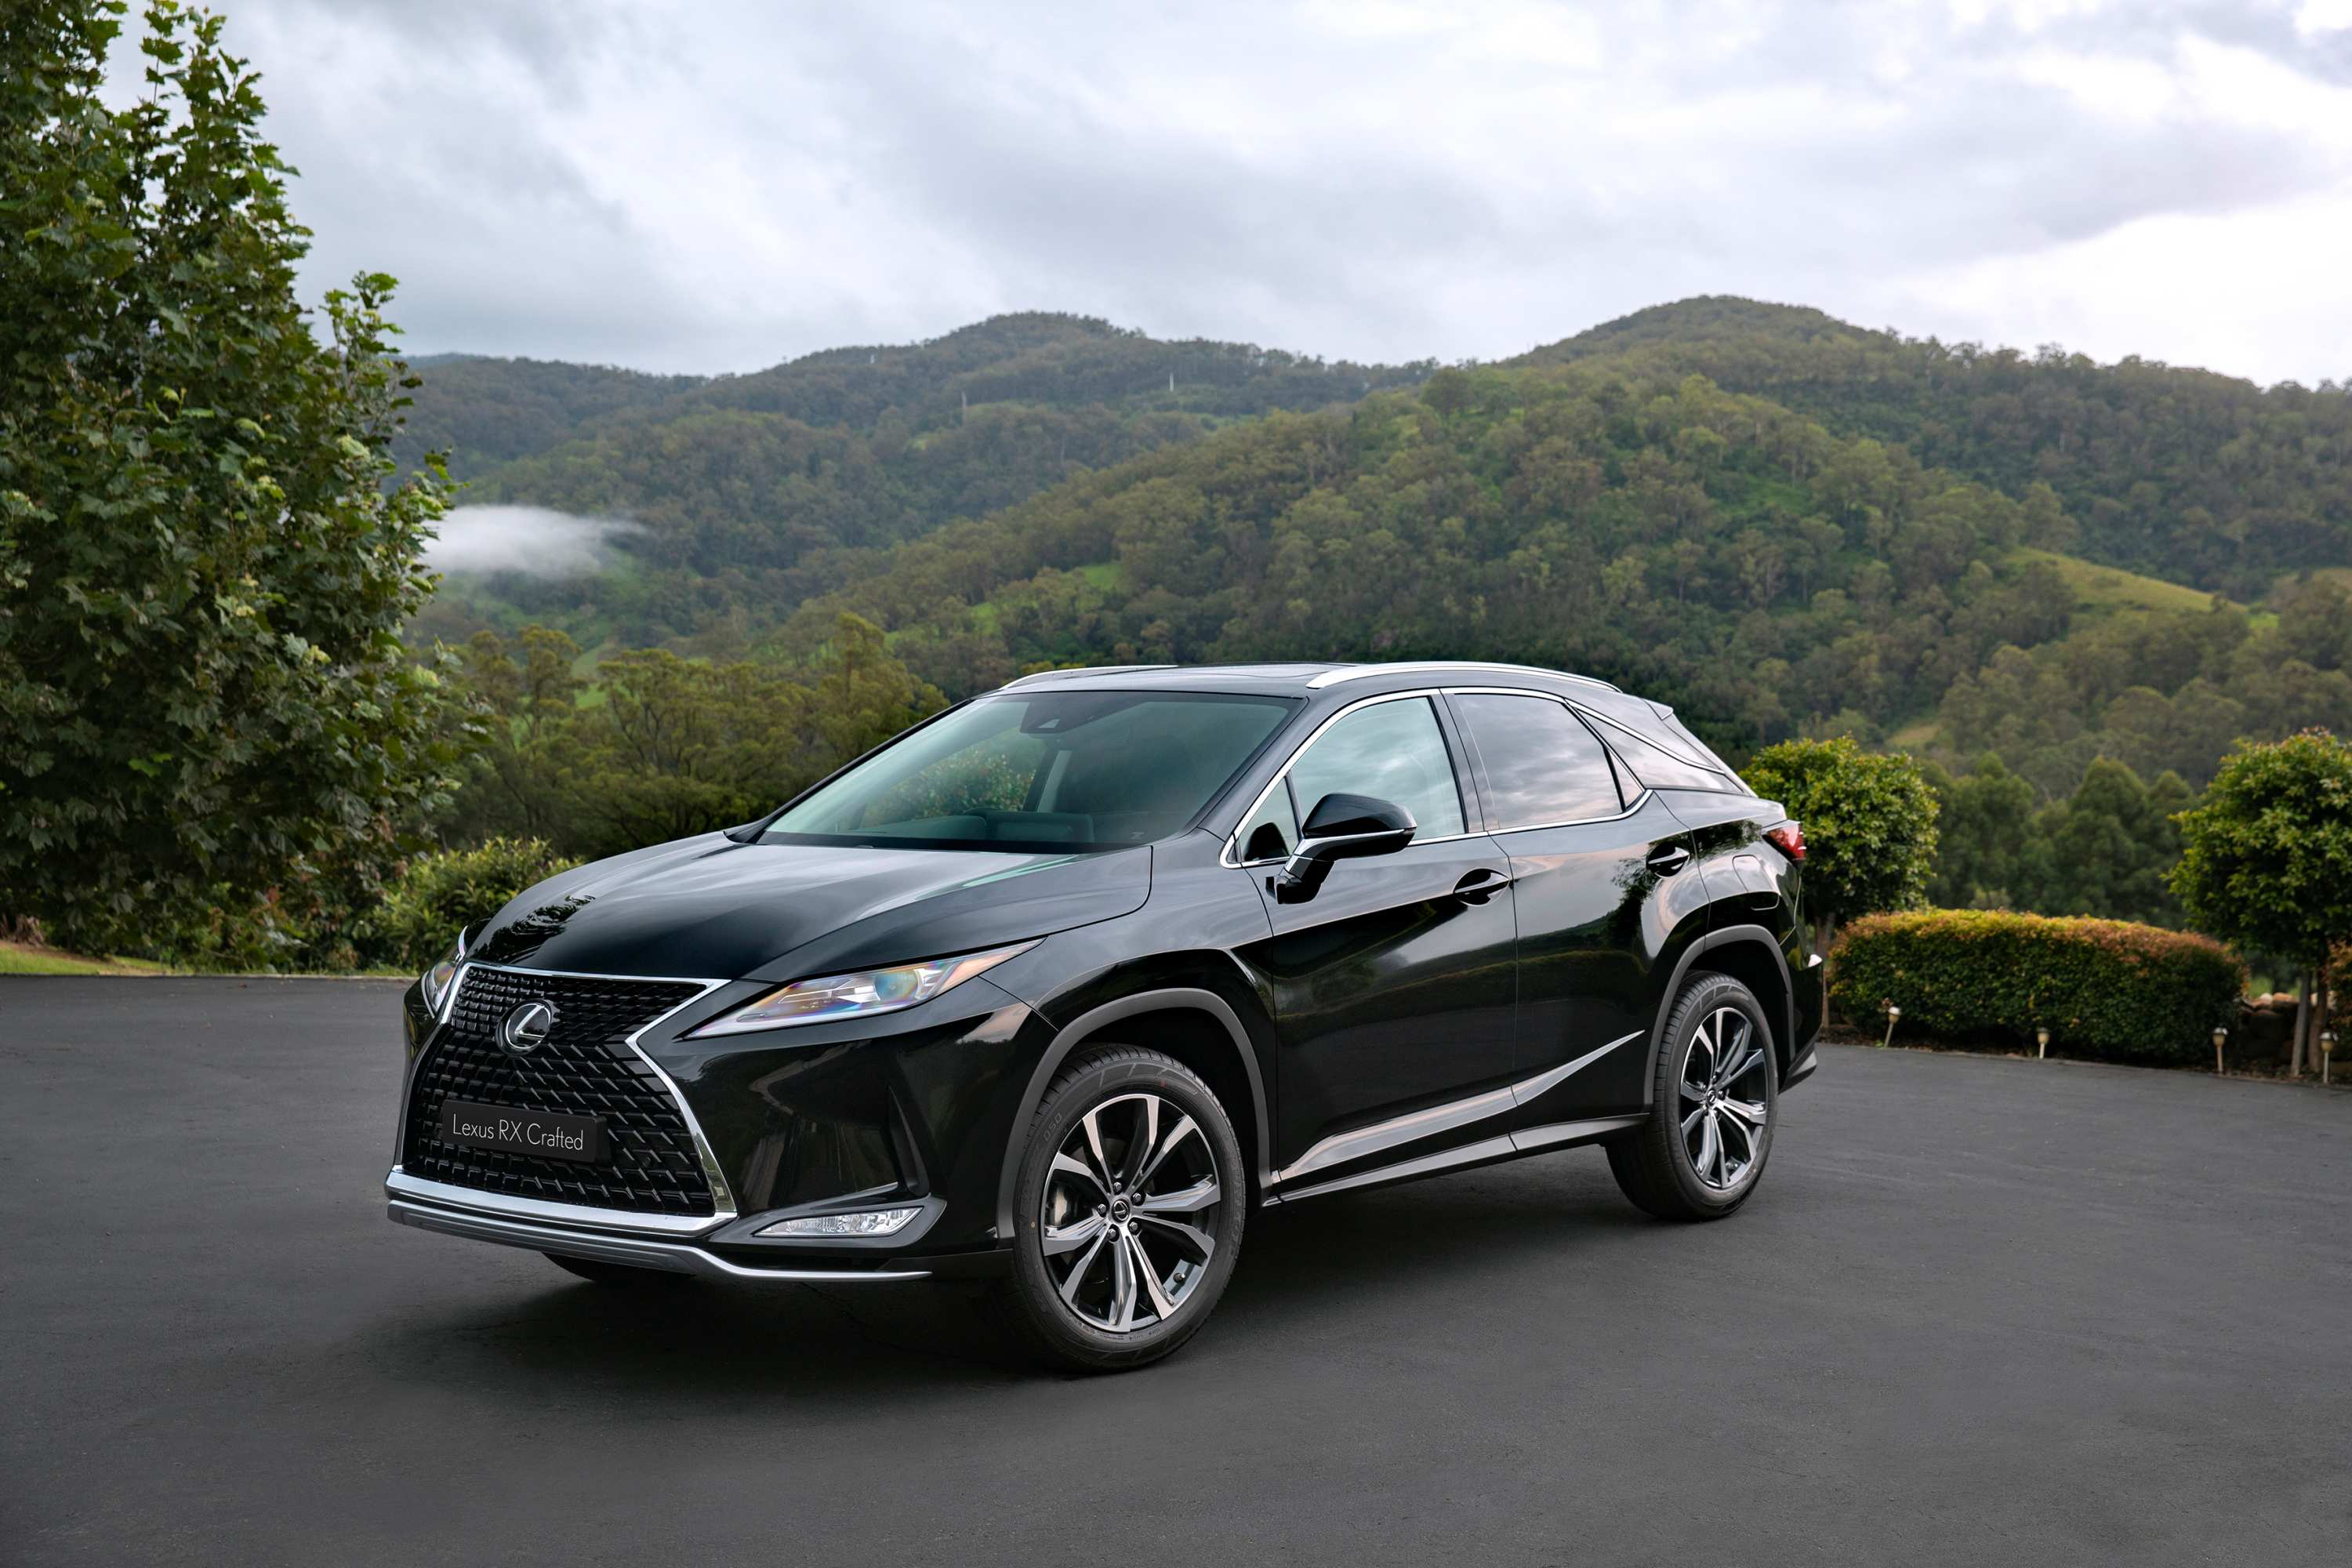 2021 Lexus Crafted Encore RX